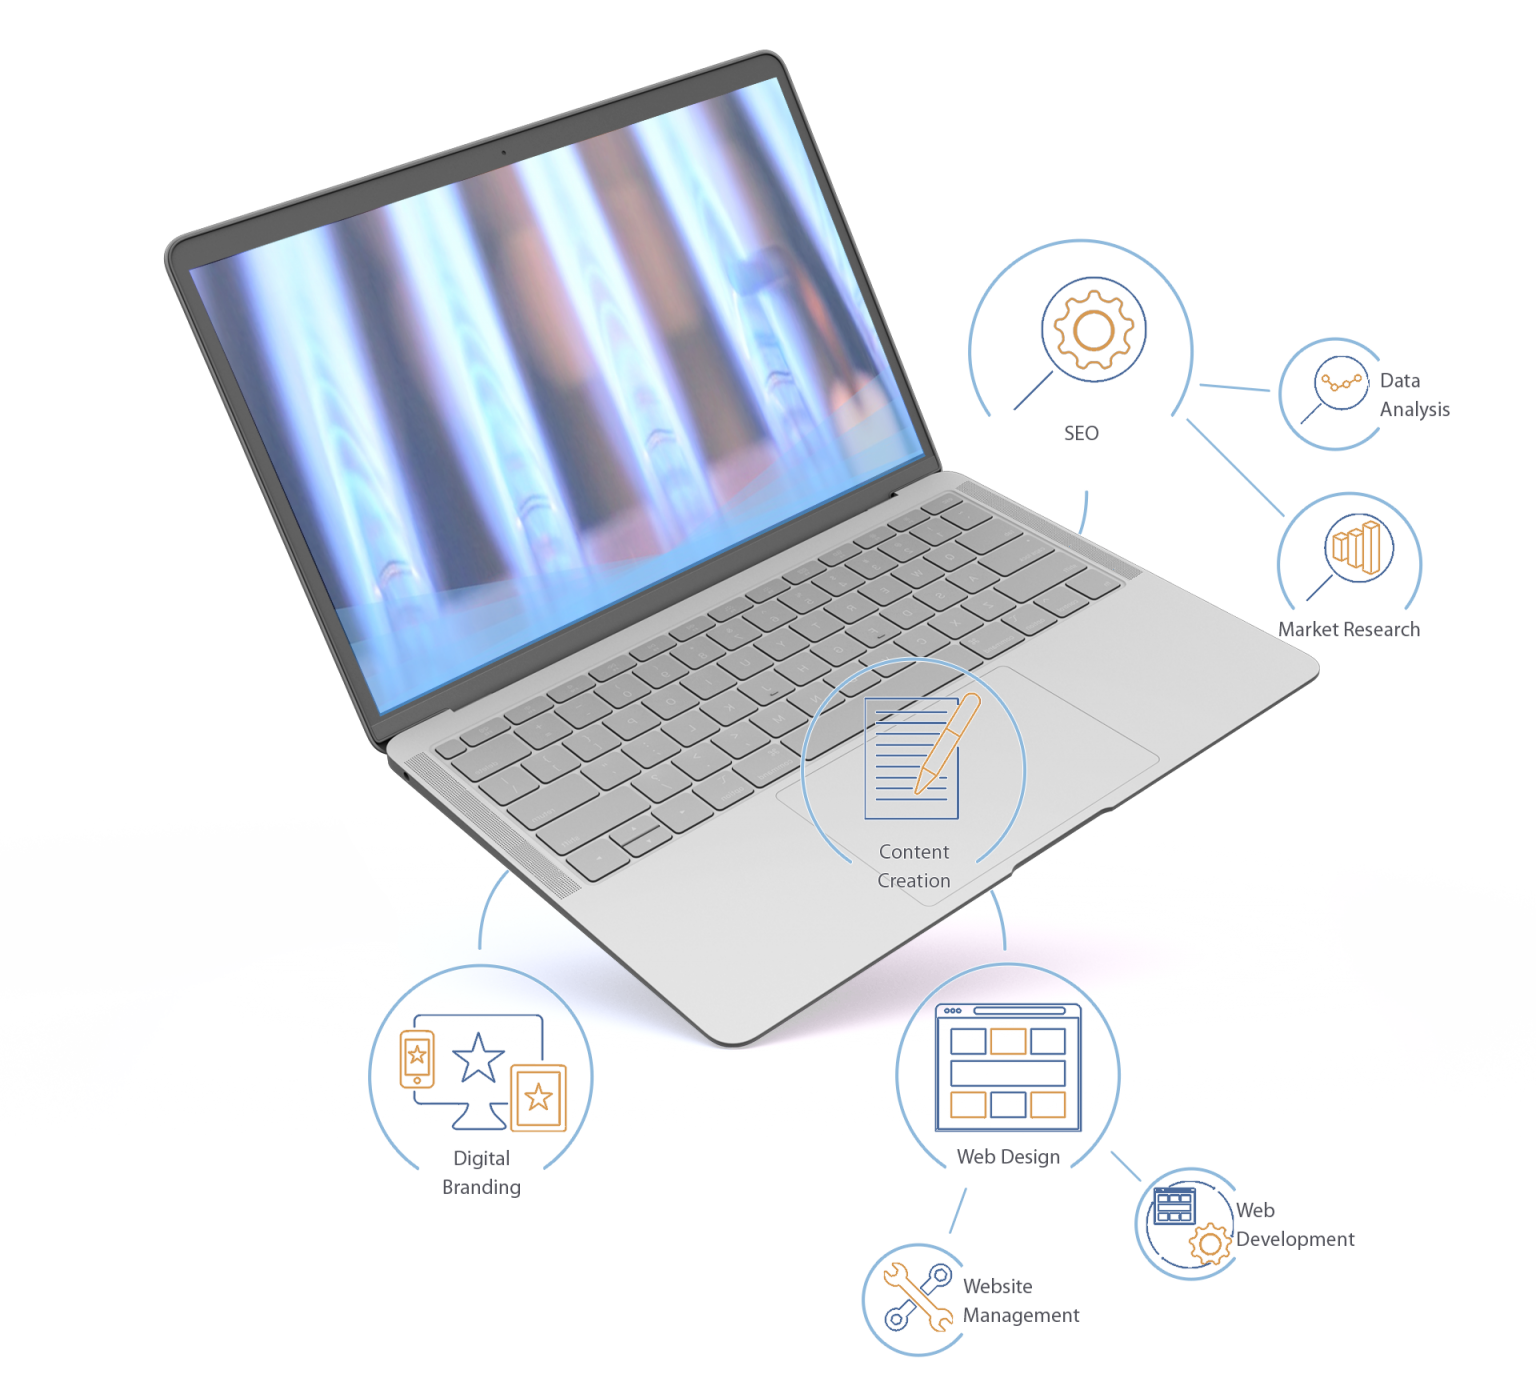 Laptop depicting anatomy of a website by Zenbox Marketing in Santa Fe NM, they include digital branding, web design, content creation, and SEO